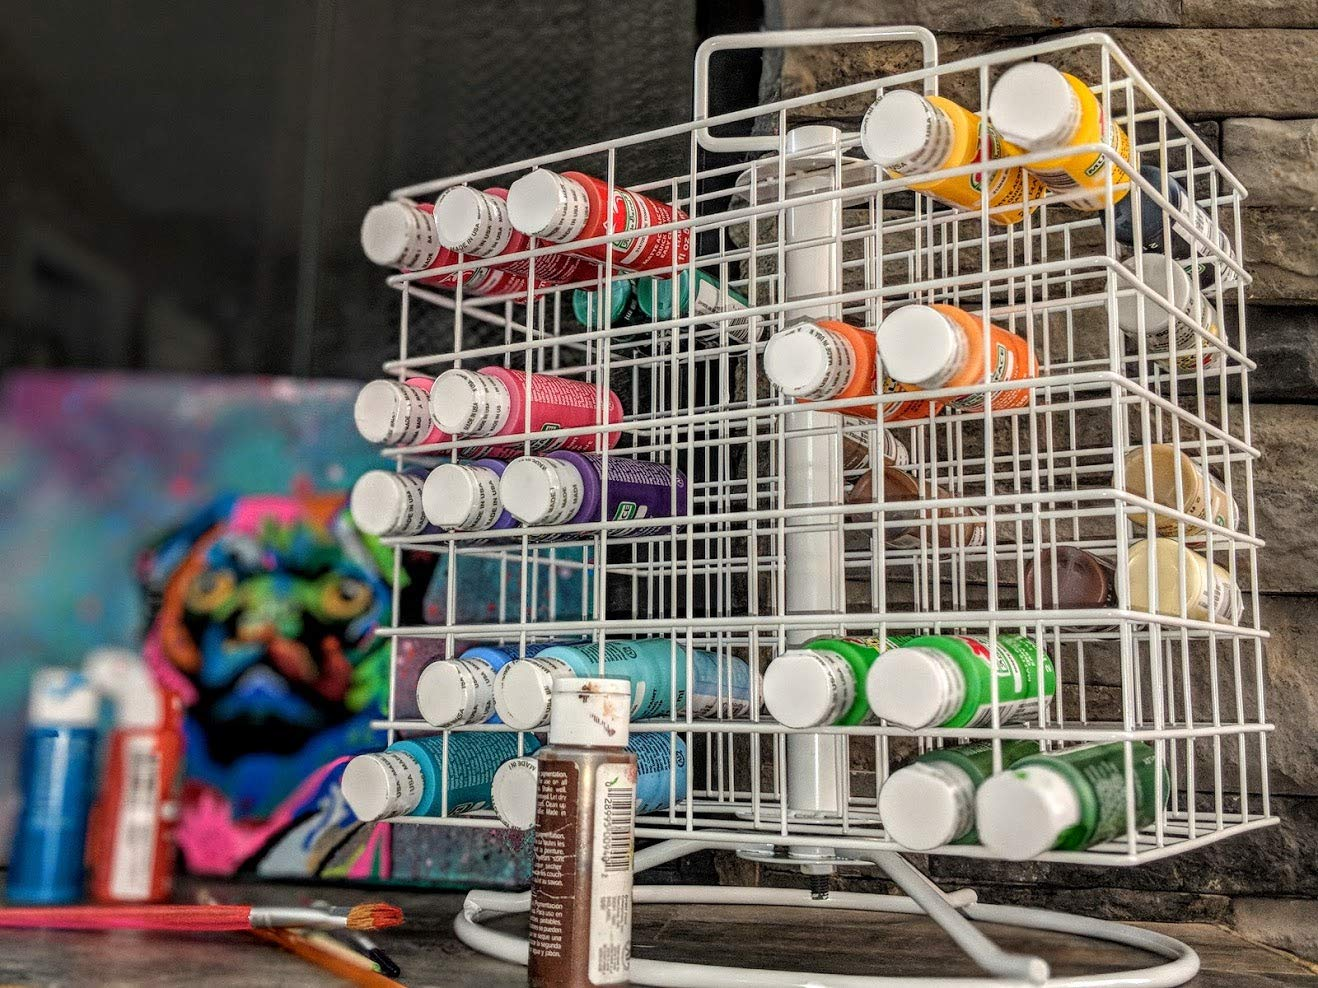 Craft Paint Storage Rack For 2oz Acrylic Paints, Revolving Acrylic Craft Paint Coated-Wire Caddy, Holds 112 2-Ounce Bottles, Portable by JEI